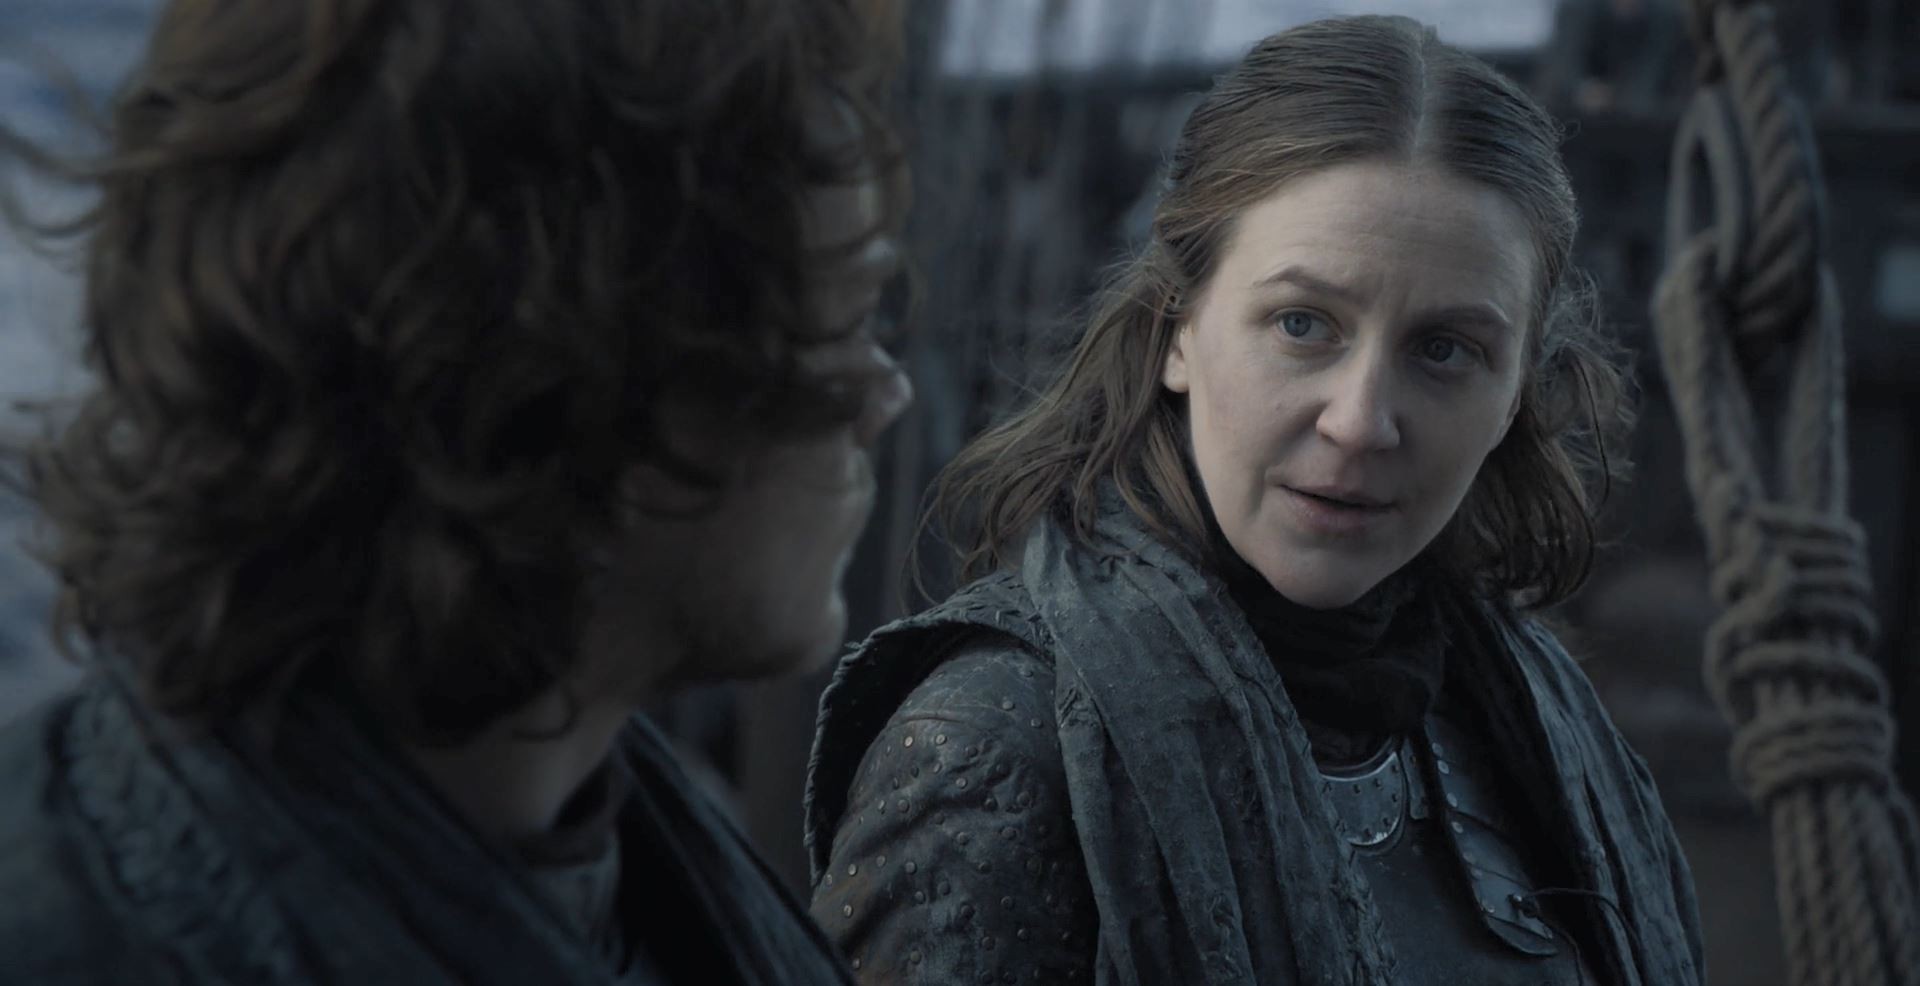 Game of Thrones S08E01 Winterfell Review - Yara talks with Theon